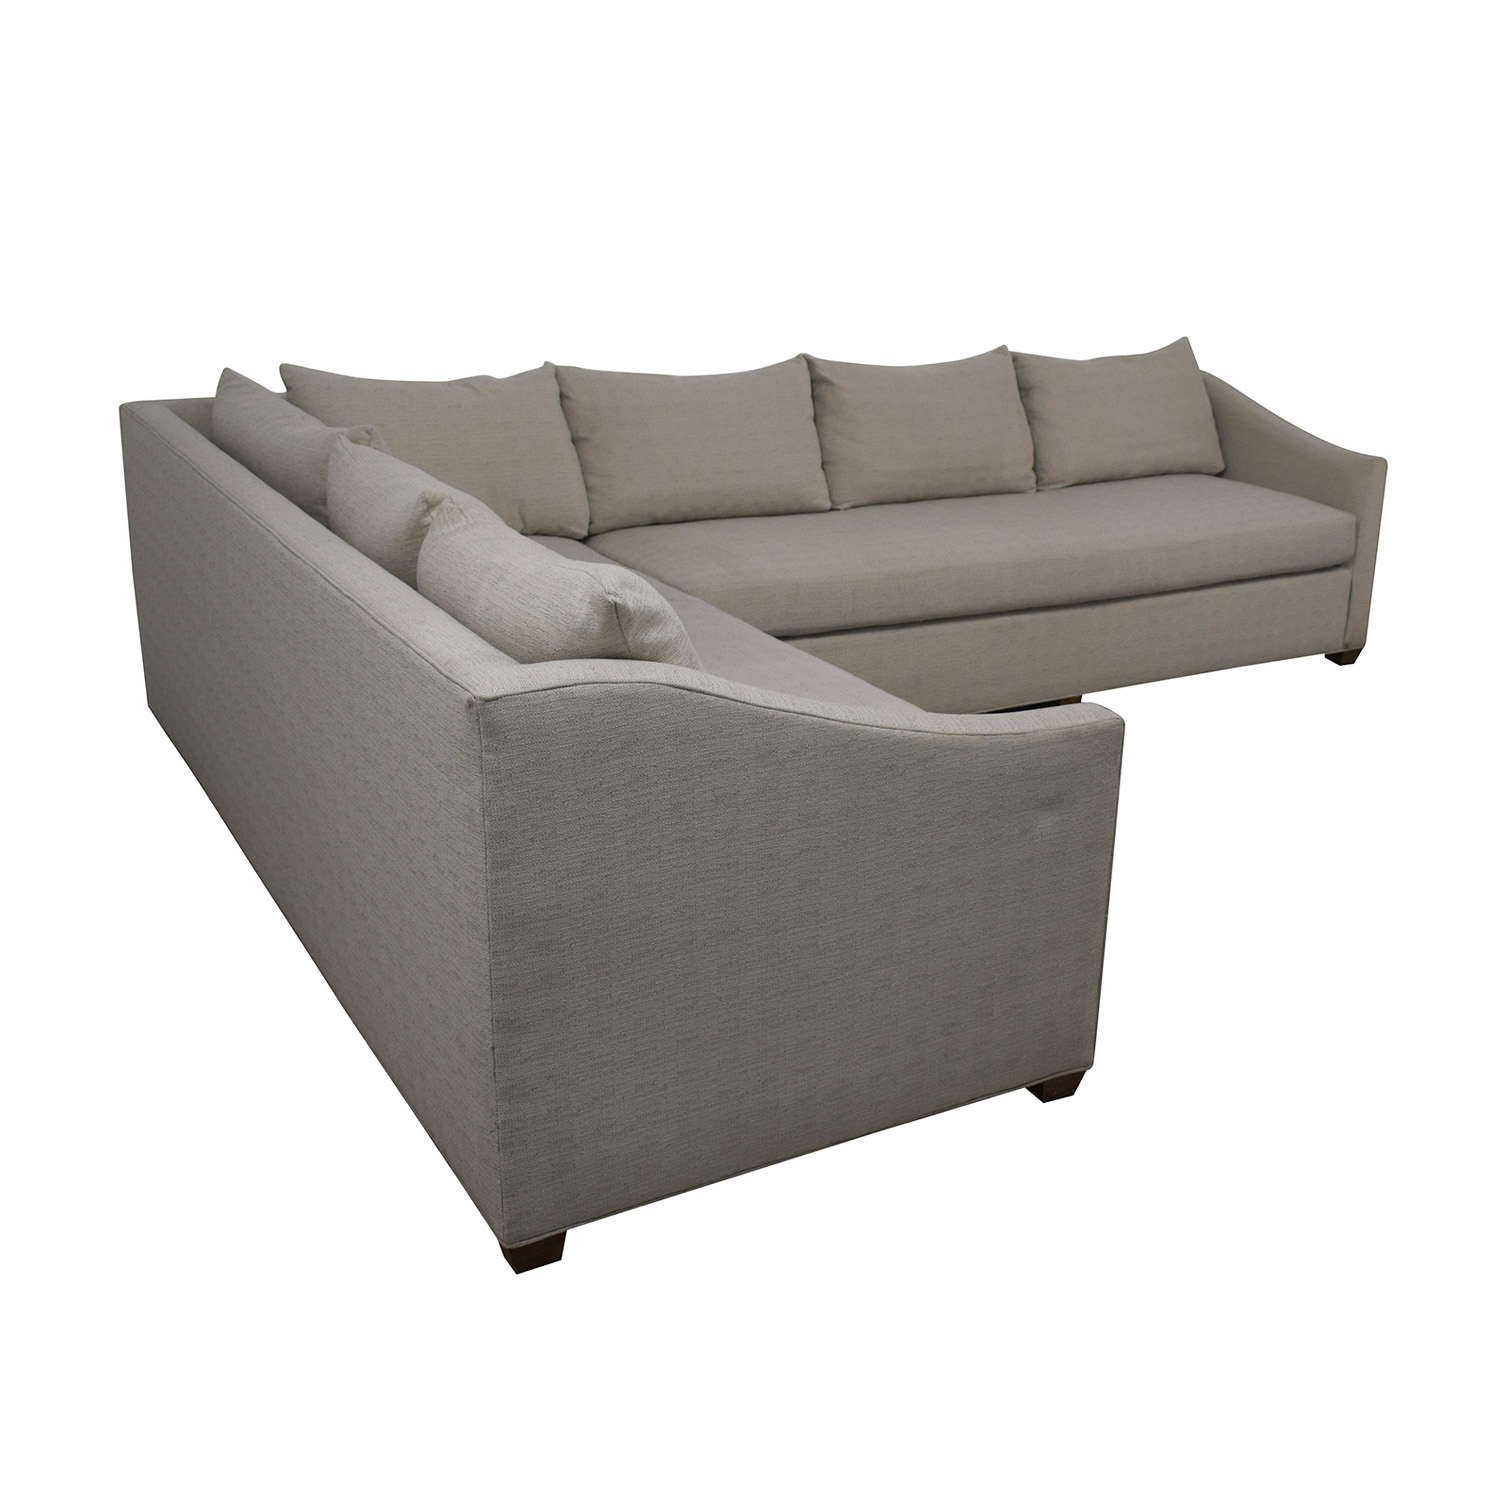 78 Off Maiden Home Maiden Home Sullivan Grey L Shaped Sectional